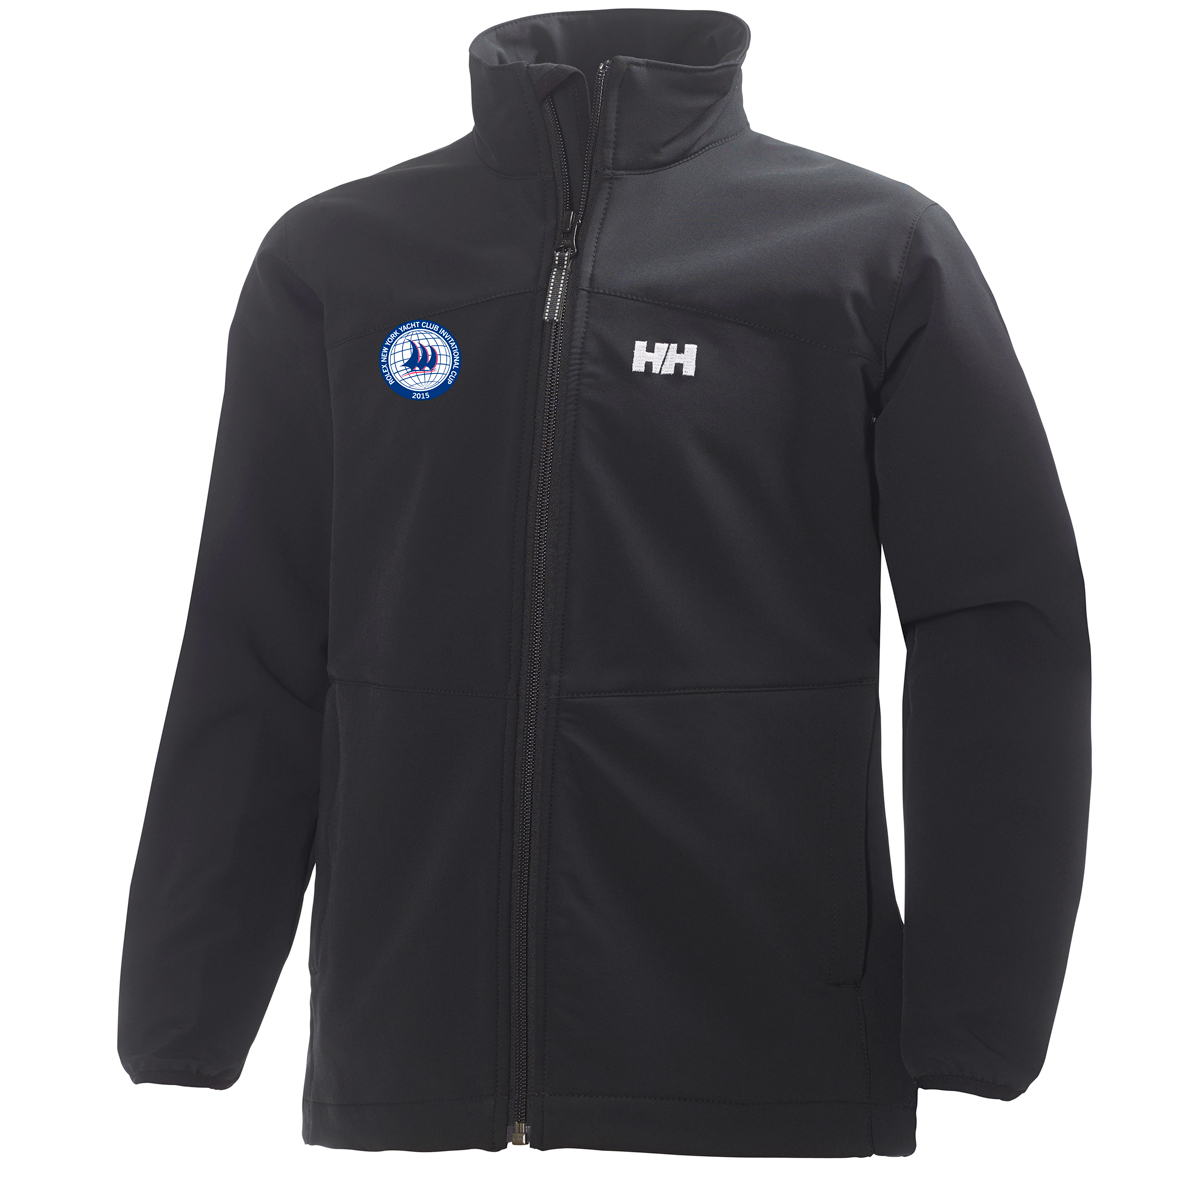 NYYCIC- JR PARAMOUNT SOFTSHELL JACKET